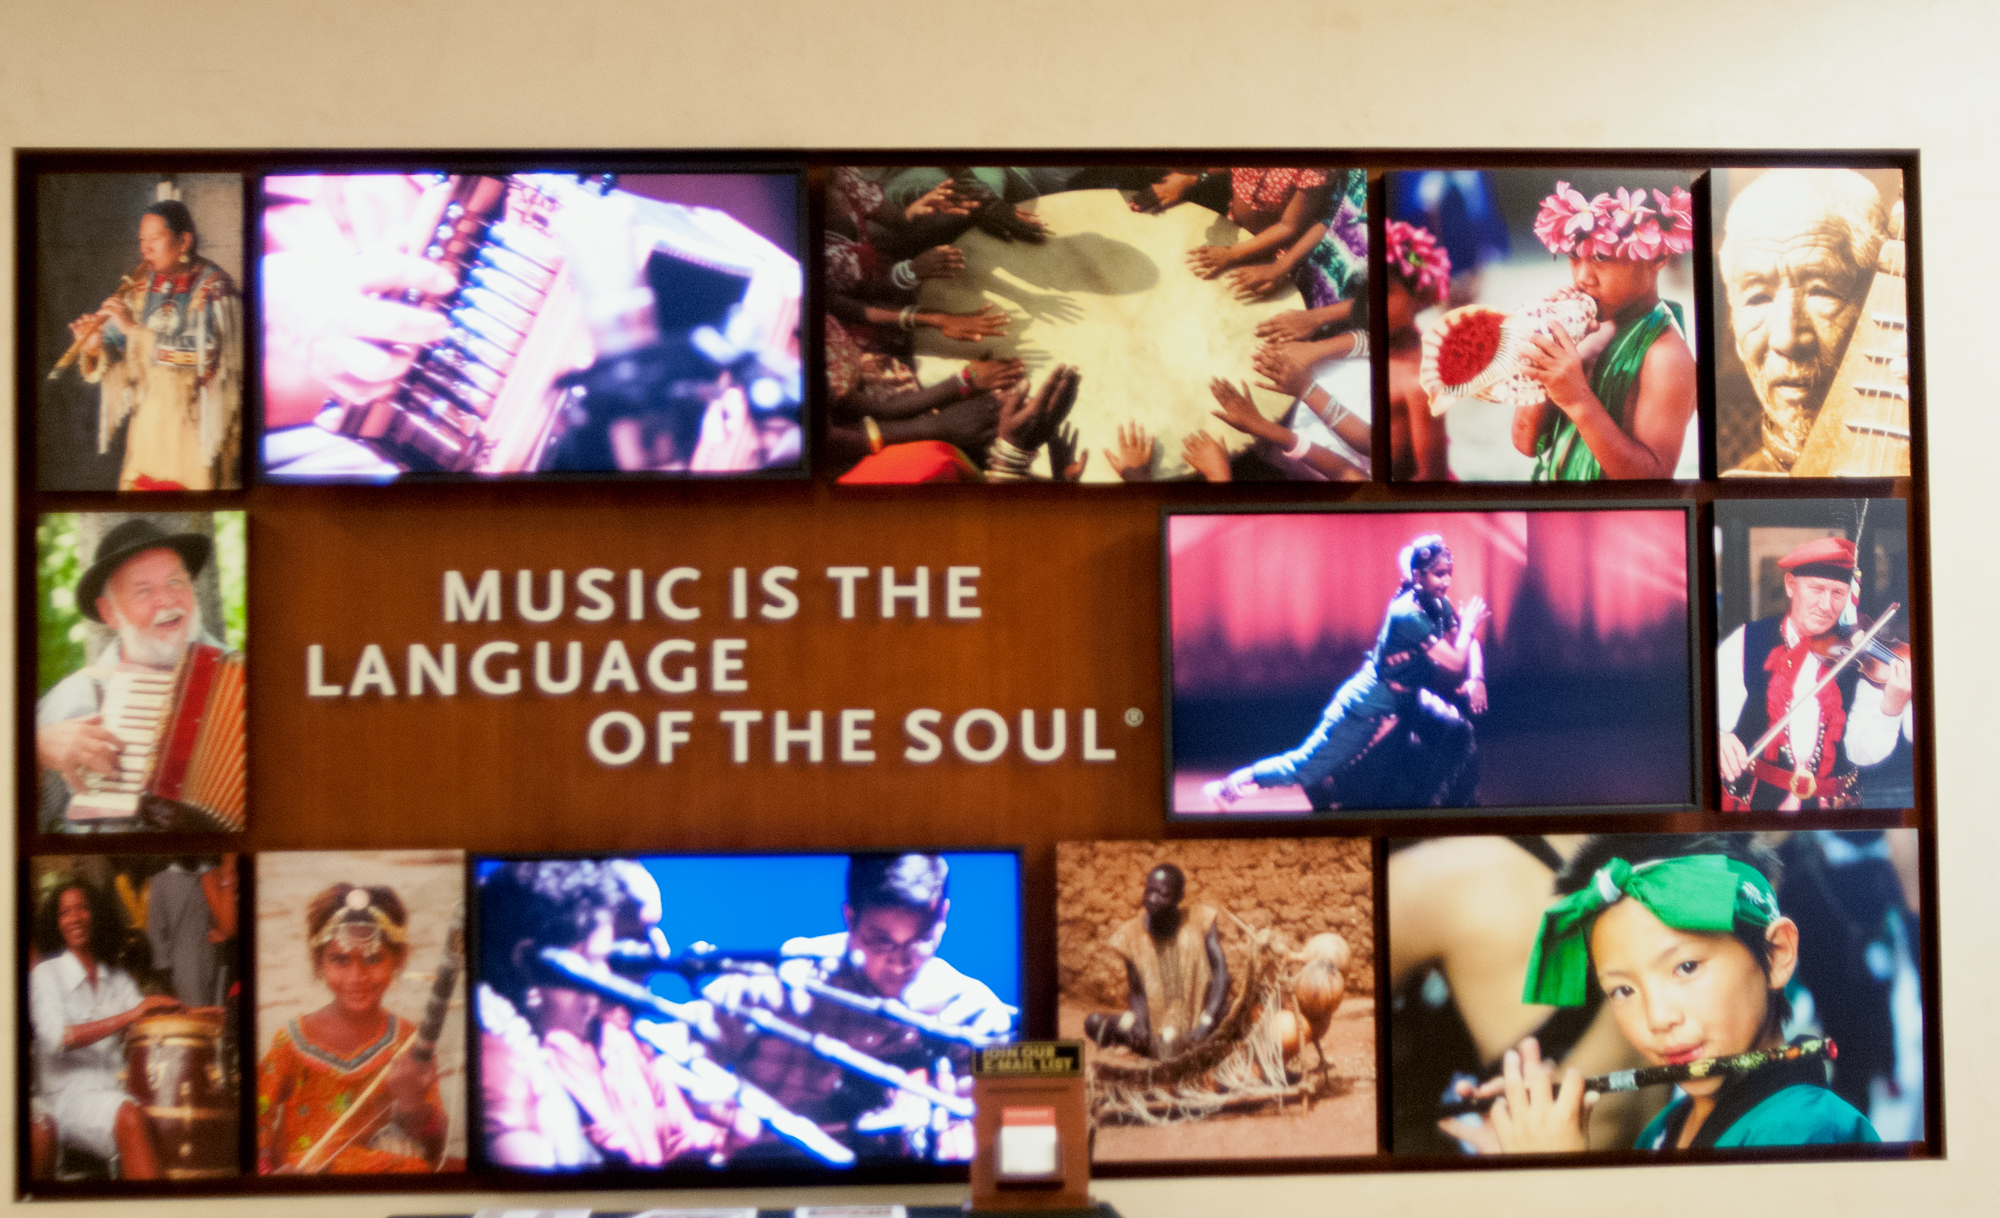 Dave holland and prism at the musical instruments museum (mim) in phoenix